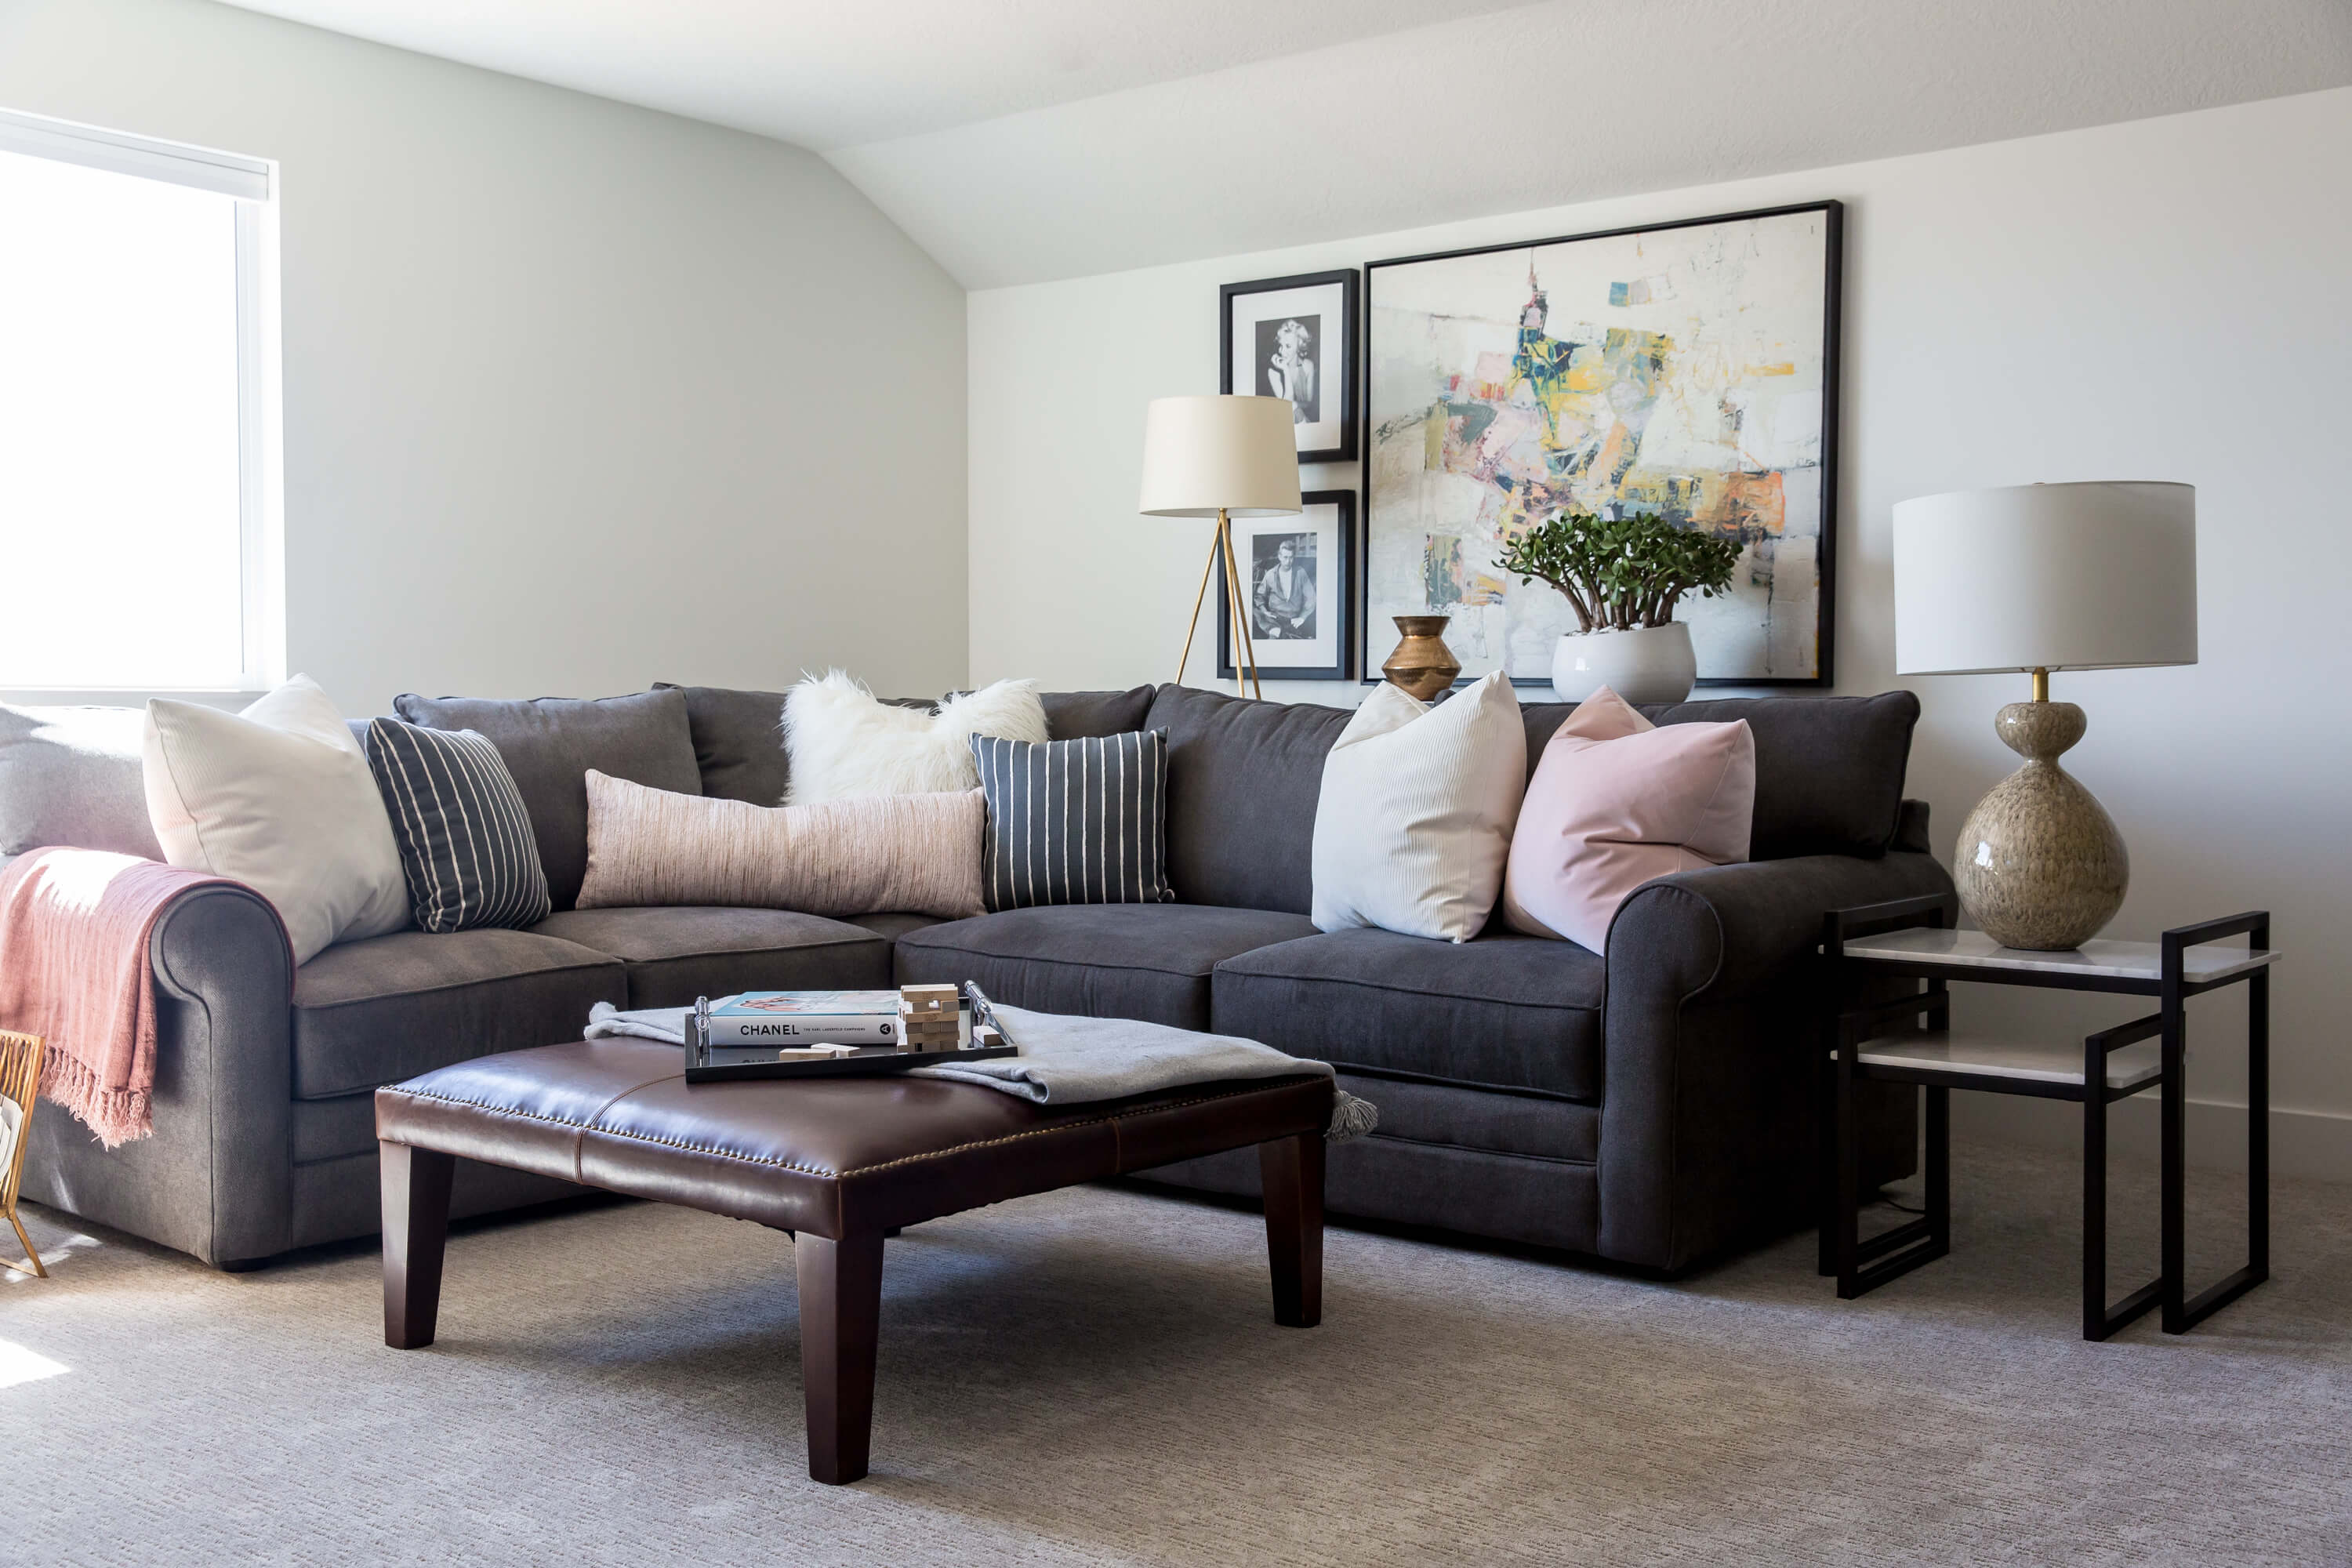 living room couch with pillows interior design